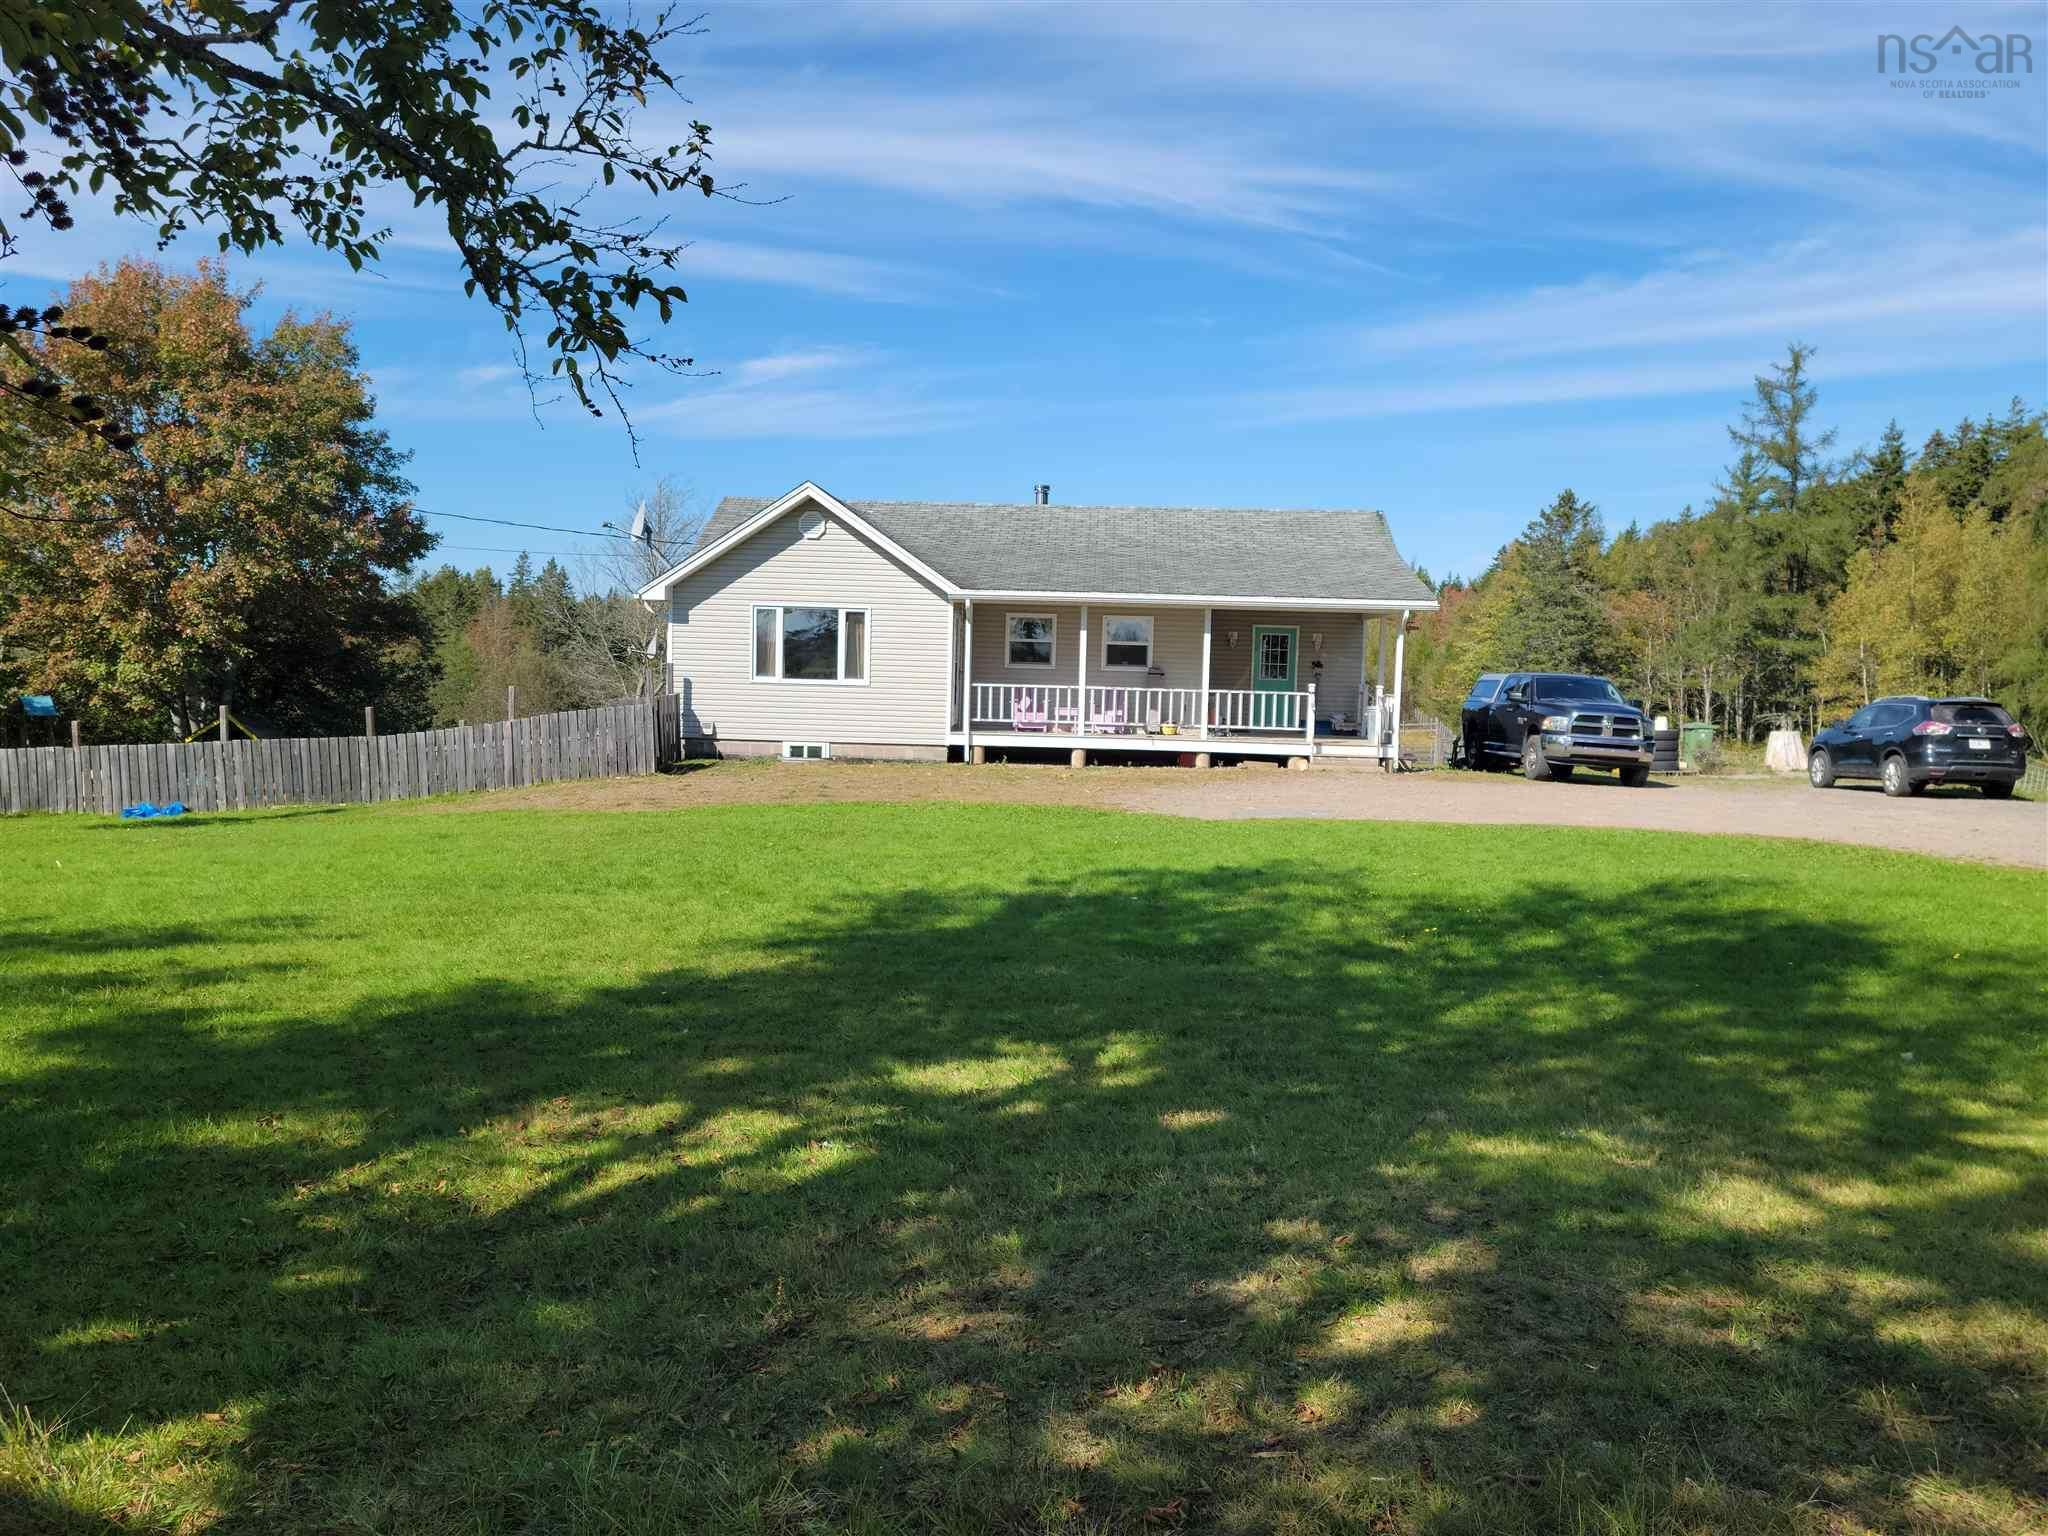 Main Photo: 1879 INDIAN Road in Macphees Corner: 105-East Hants/Colchester West Residential for sale (Halifax-Dartmouth)  : MLS®# 202125784